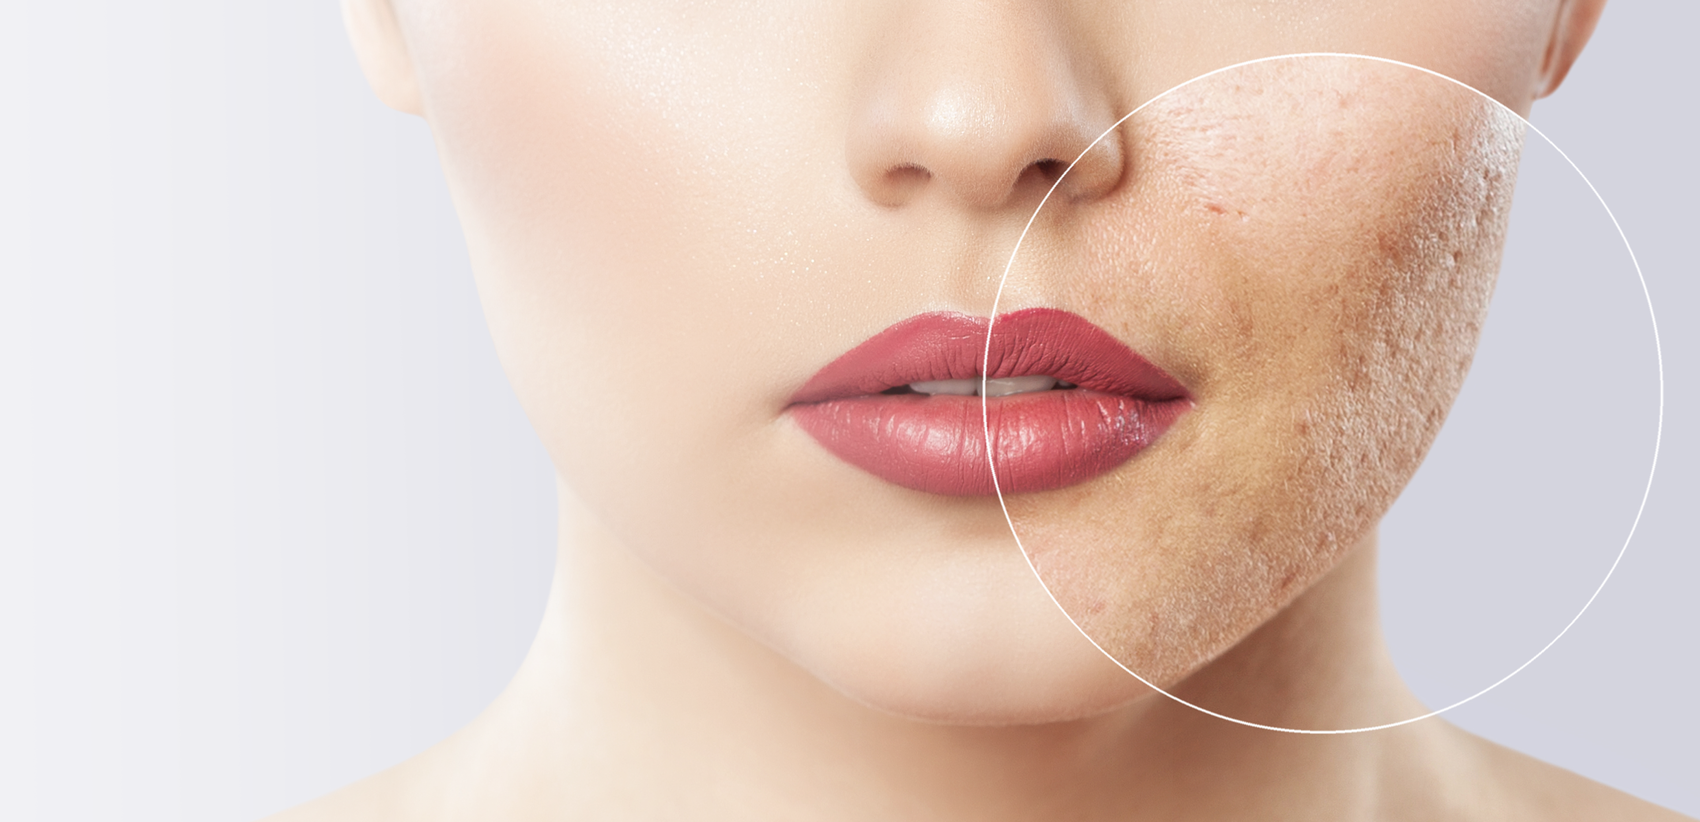 acne scar treatment in New Westminster